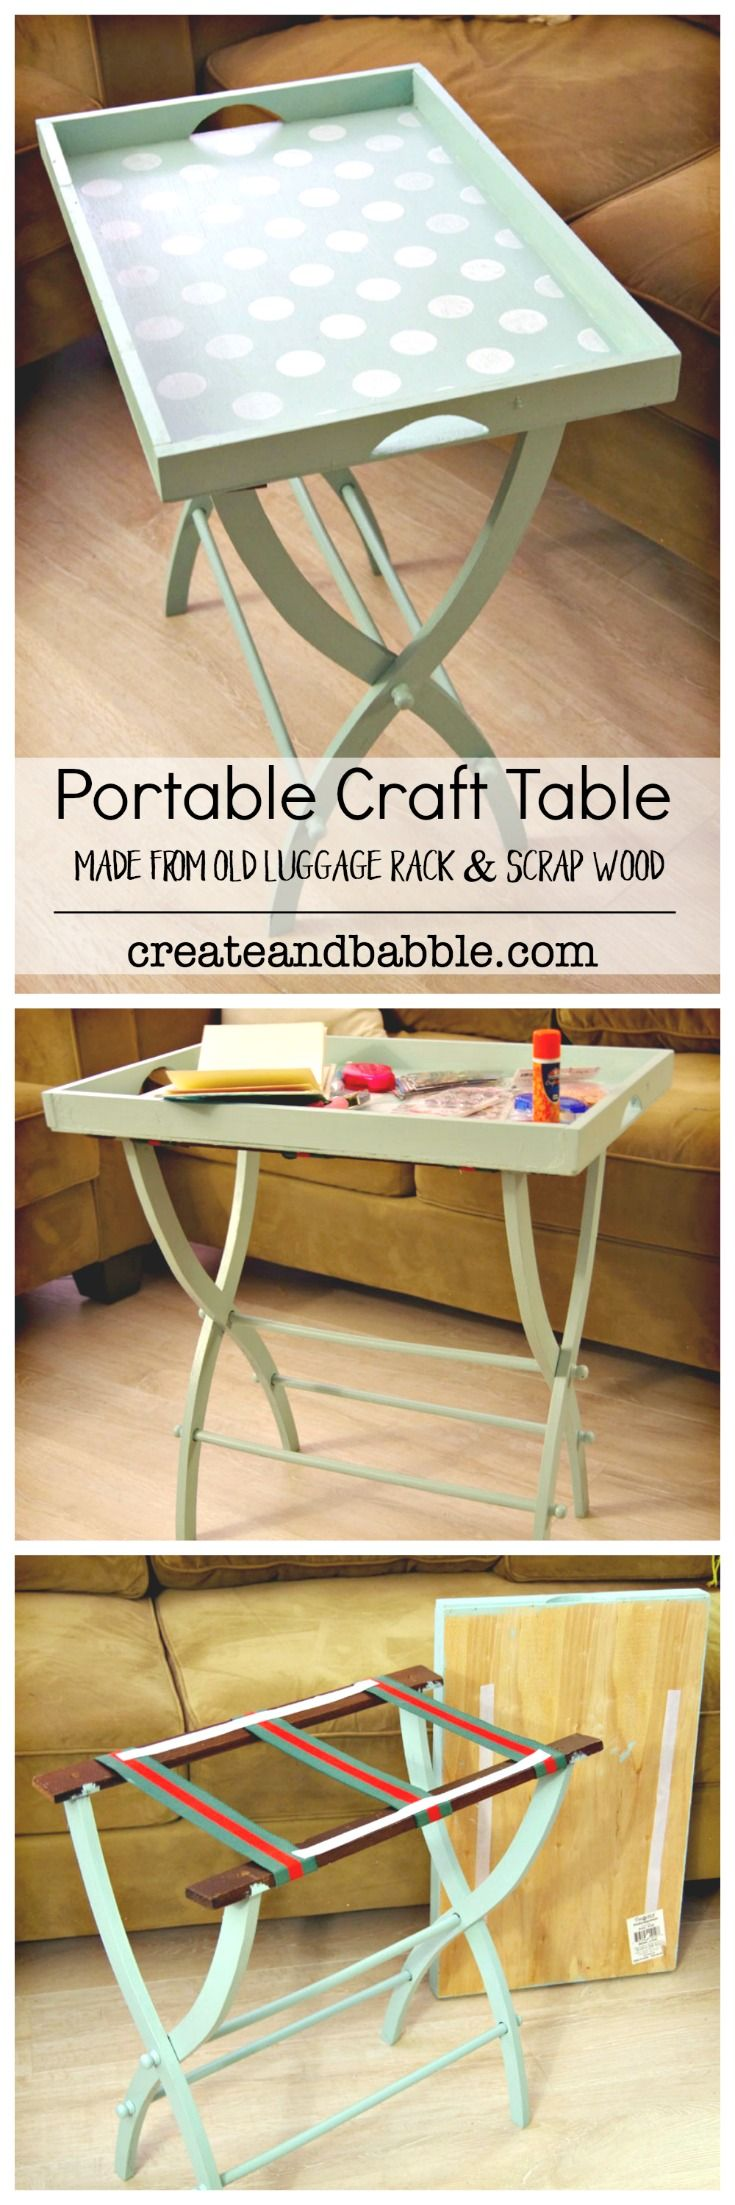 DIY Portable Craft Table Made From An Old Luggage Rack